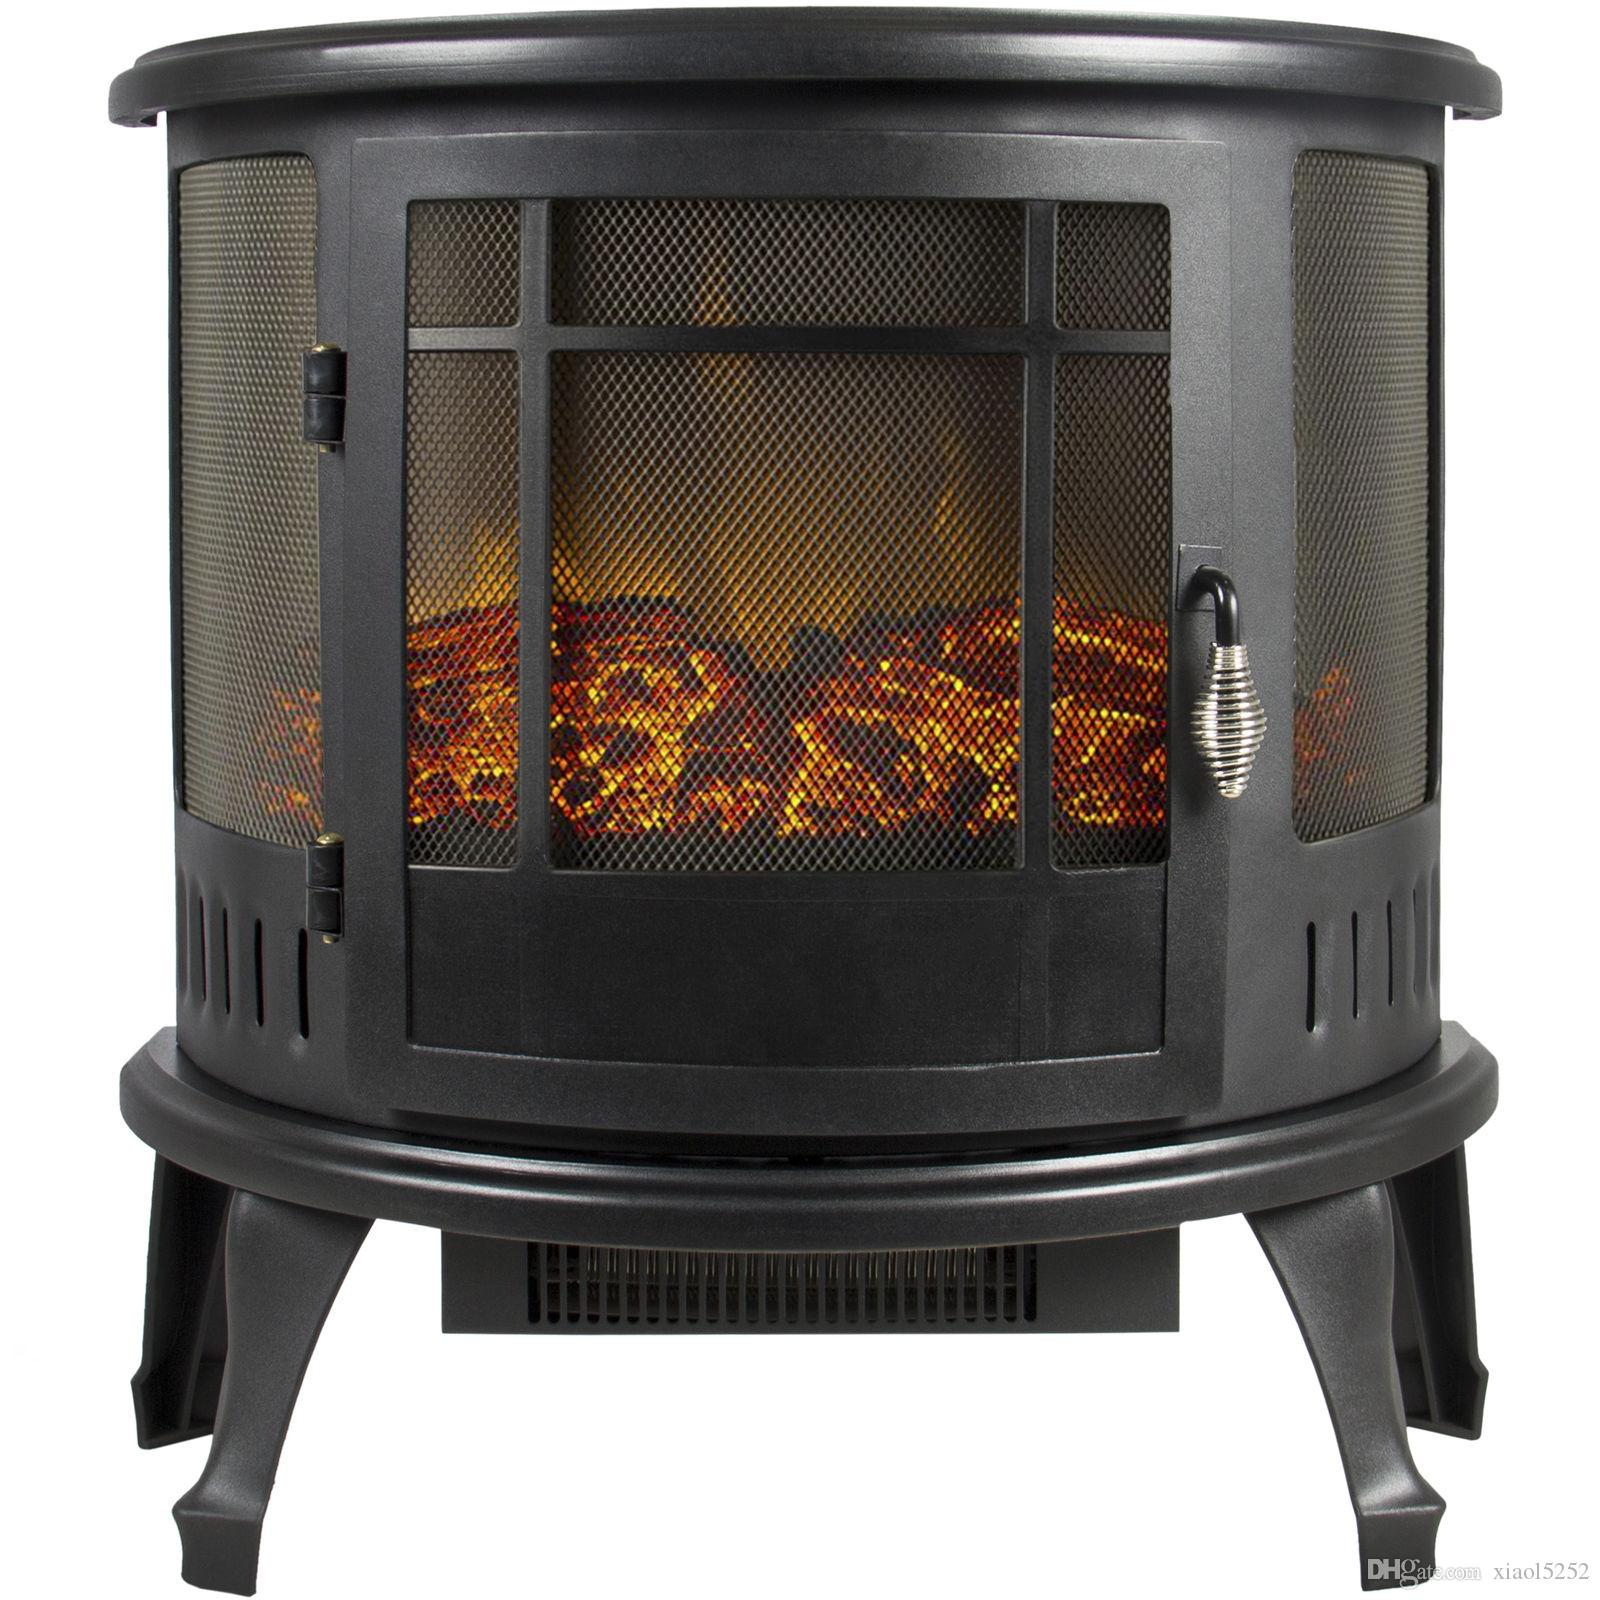 2019 portable electric fireplace stove 1500w space heater realistic rh dhgate com